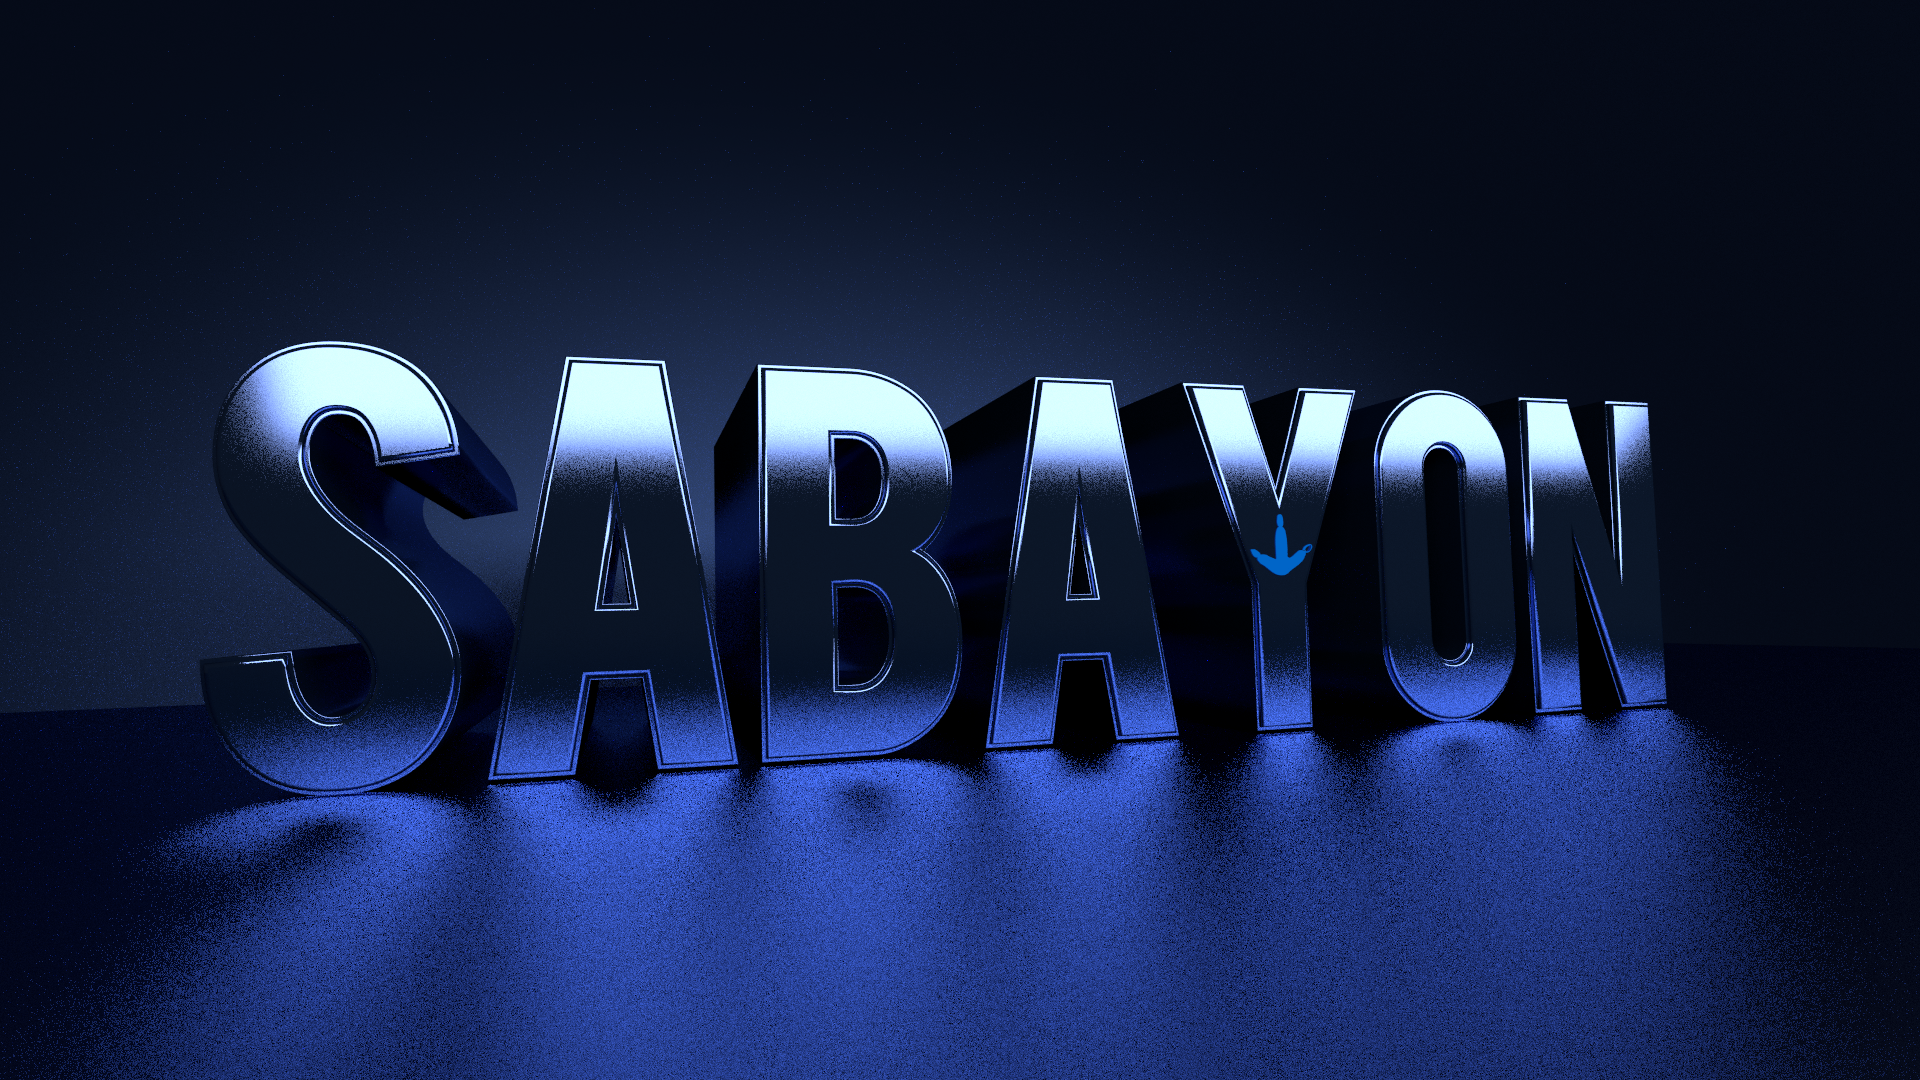 Sabayon Linux Wallpaper by Lukazoid on DeviantArt